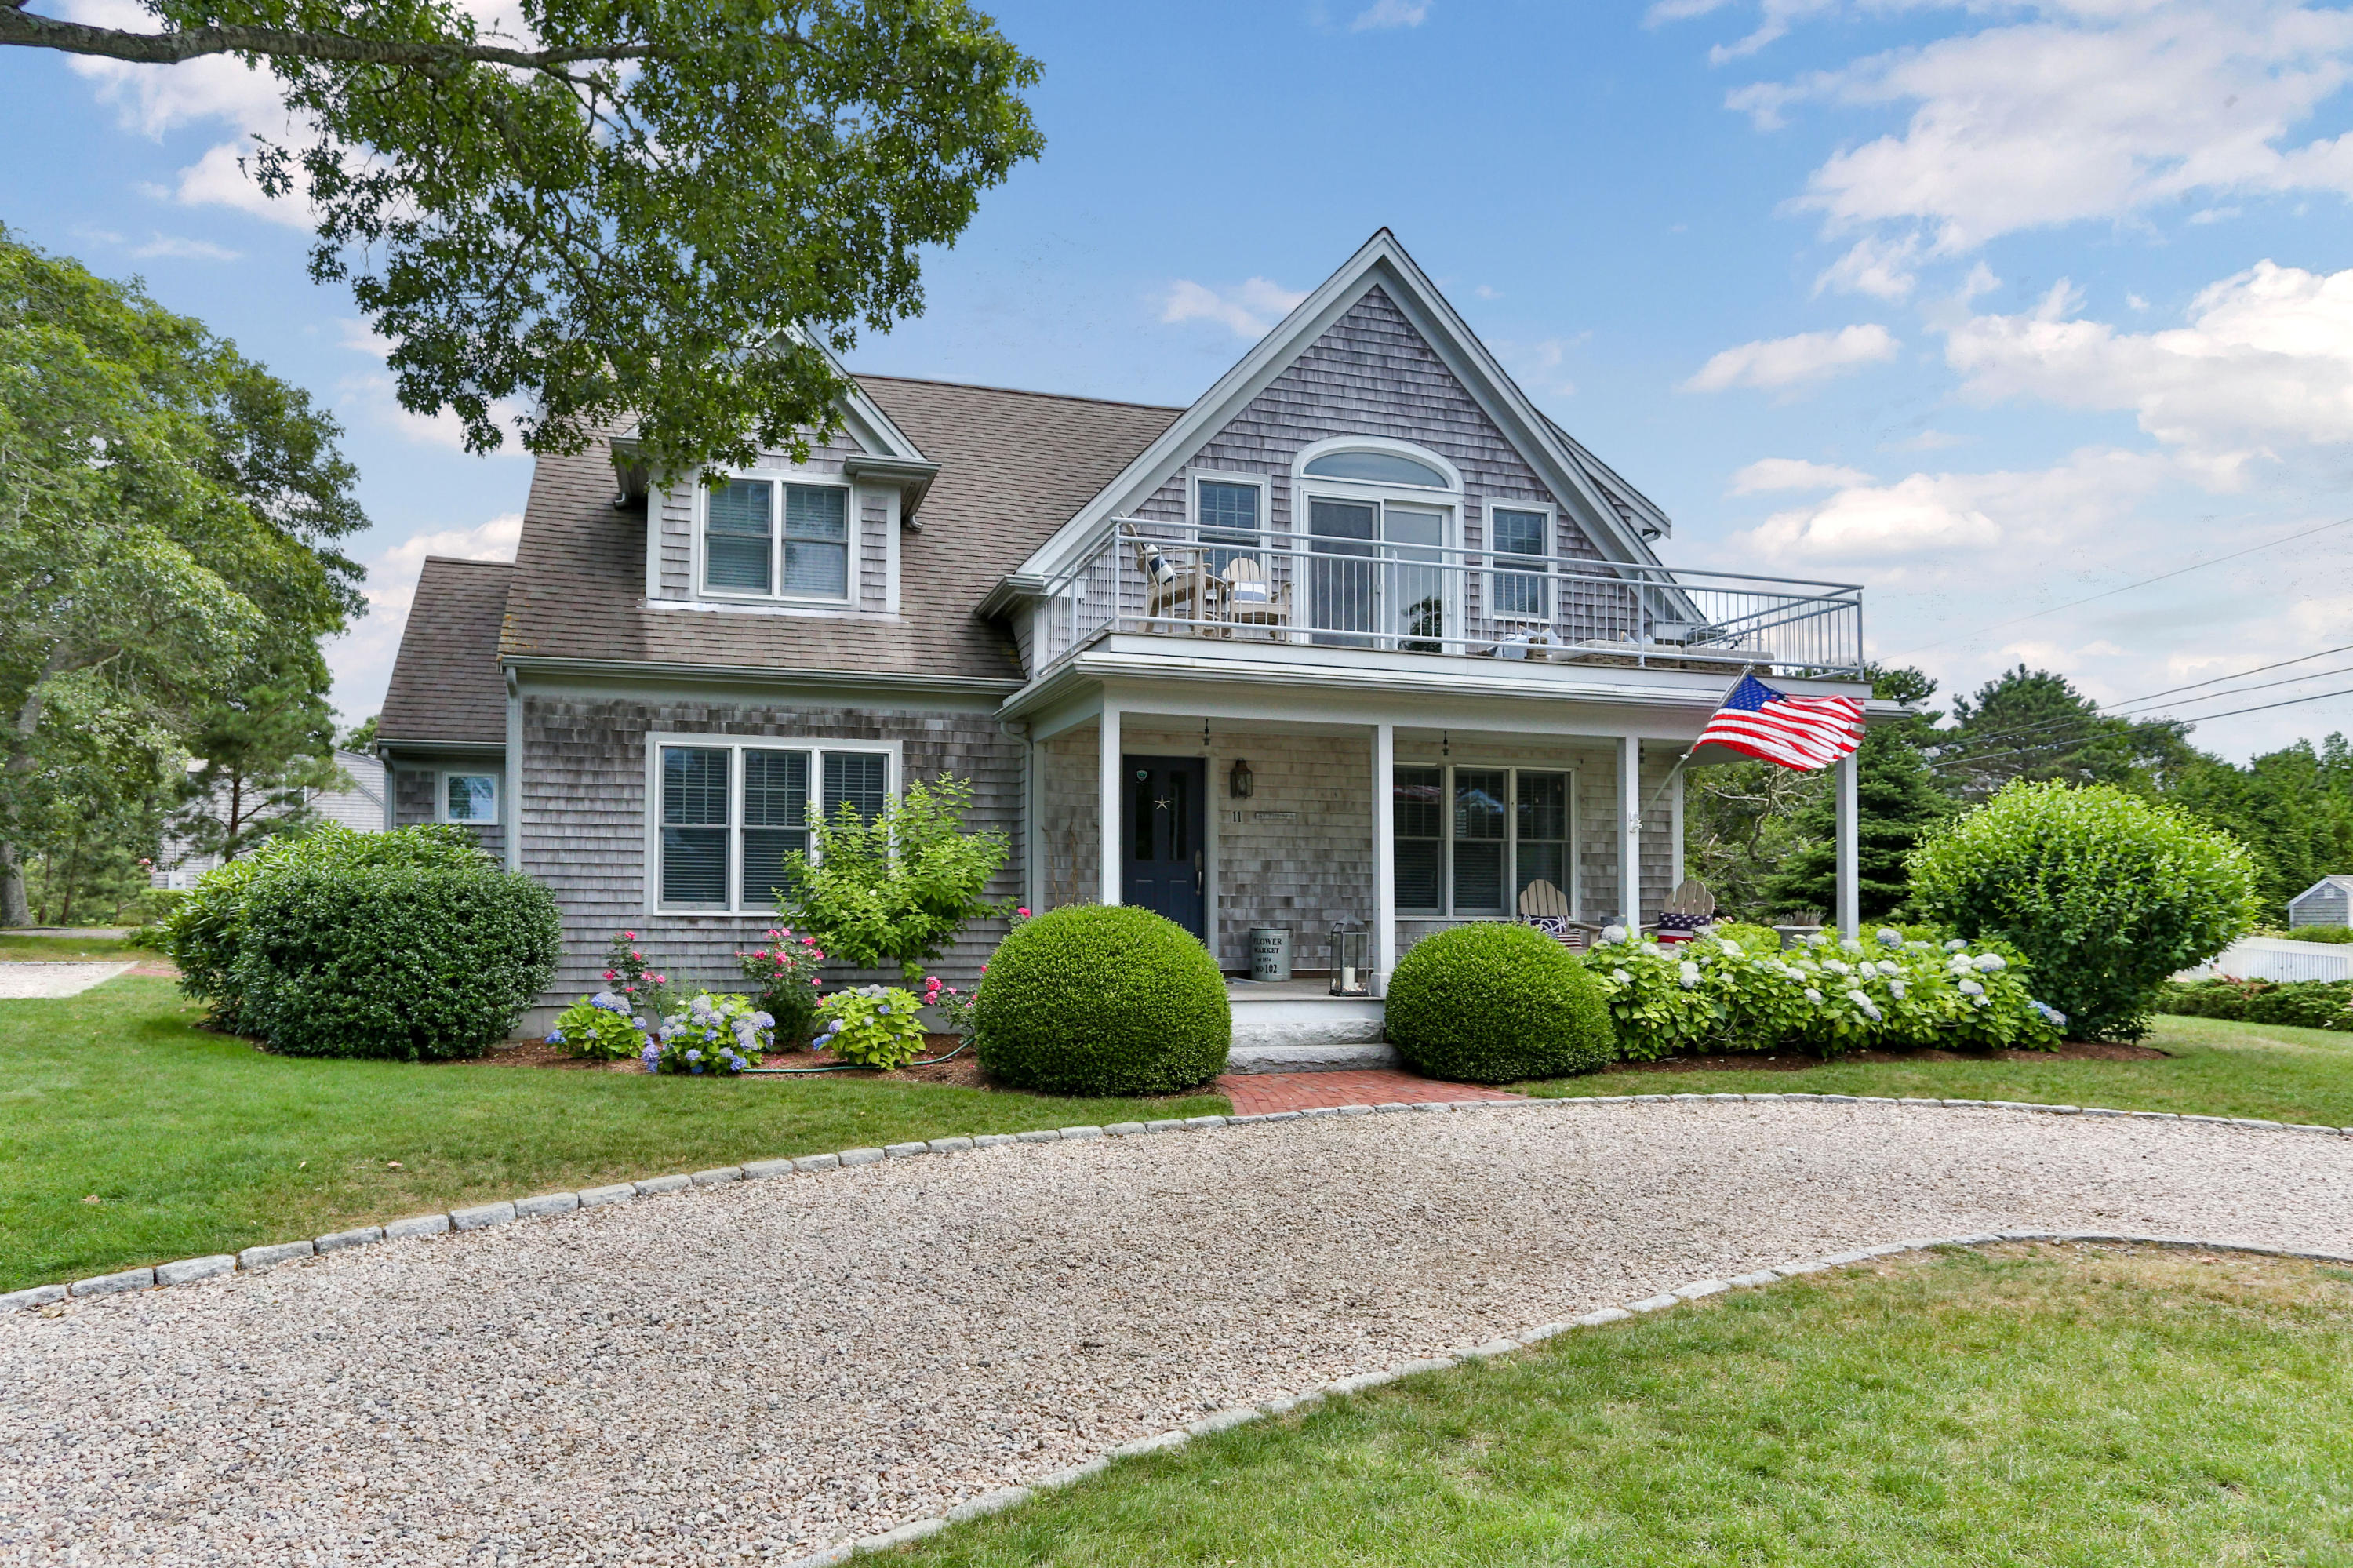 11-port-view-road-south-chatham-ma-02659